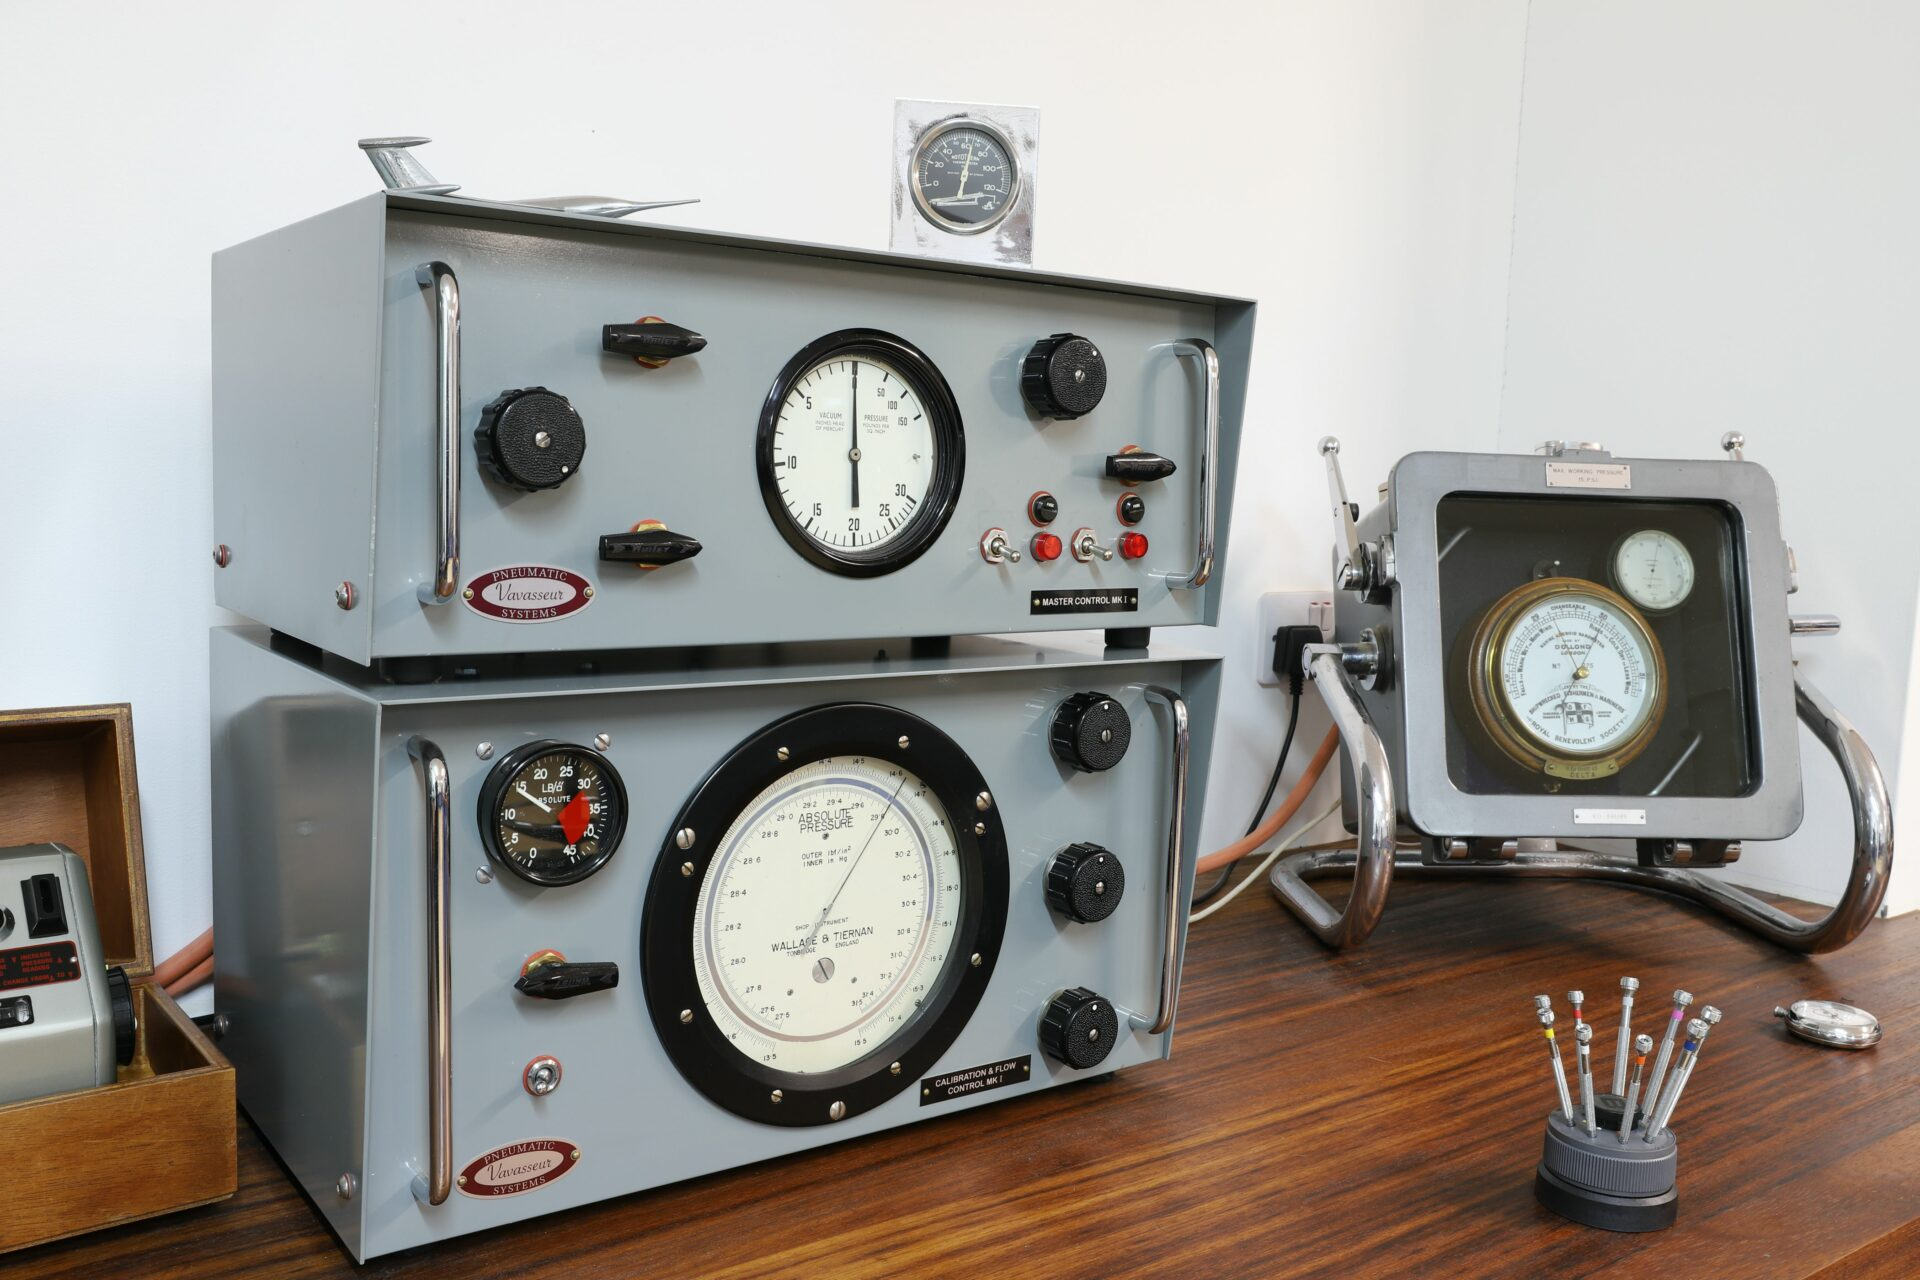 Image of Vavasseur Laboratory Test Equipment calibration units and smaller pressure chamber